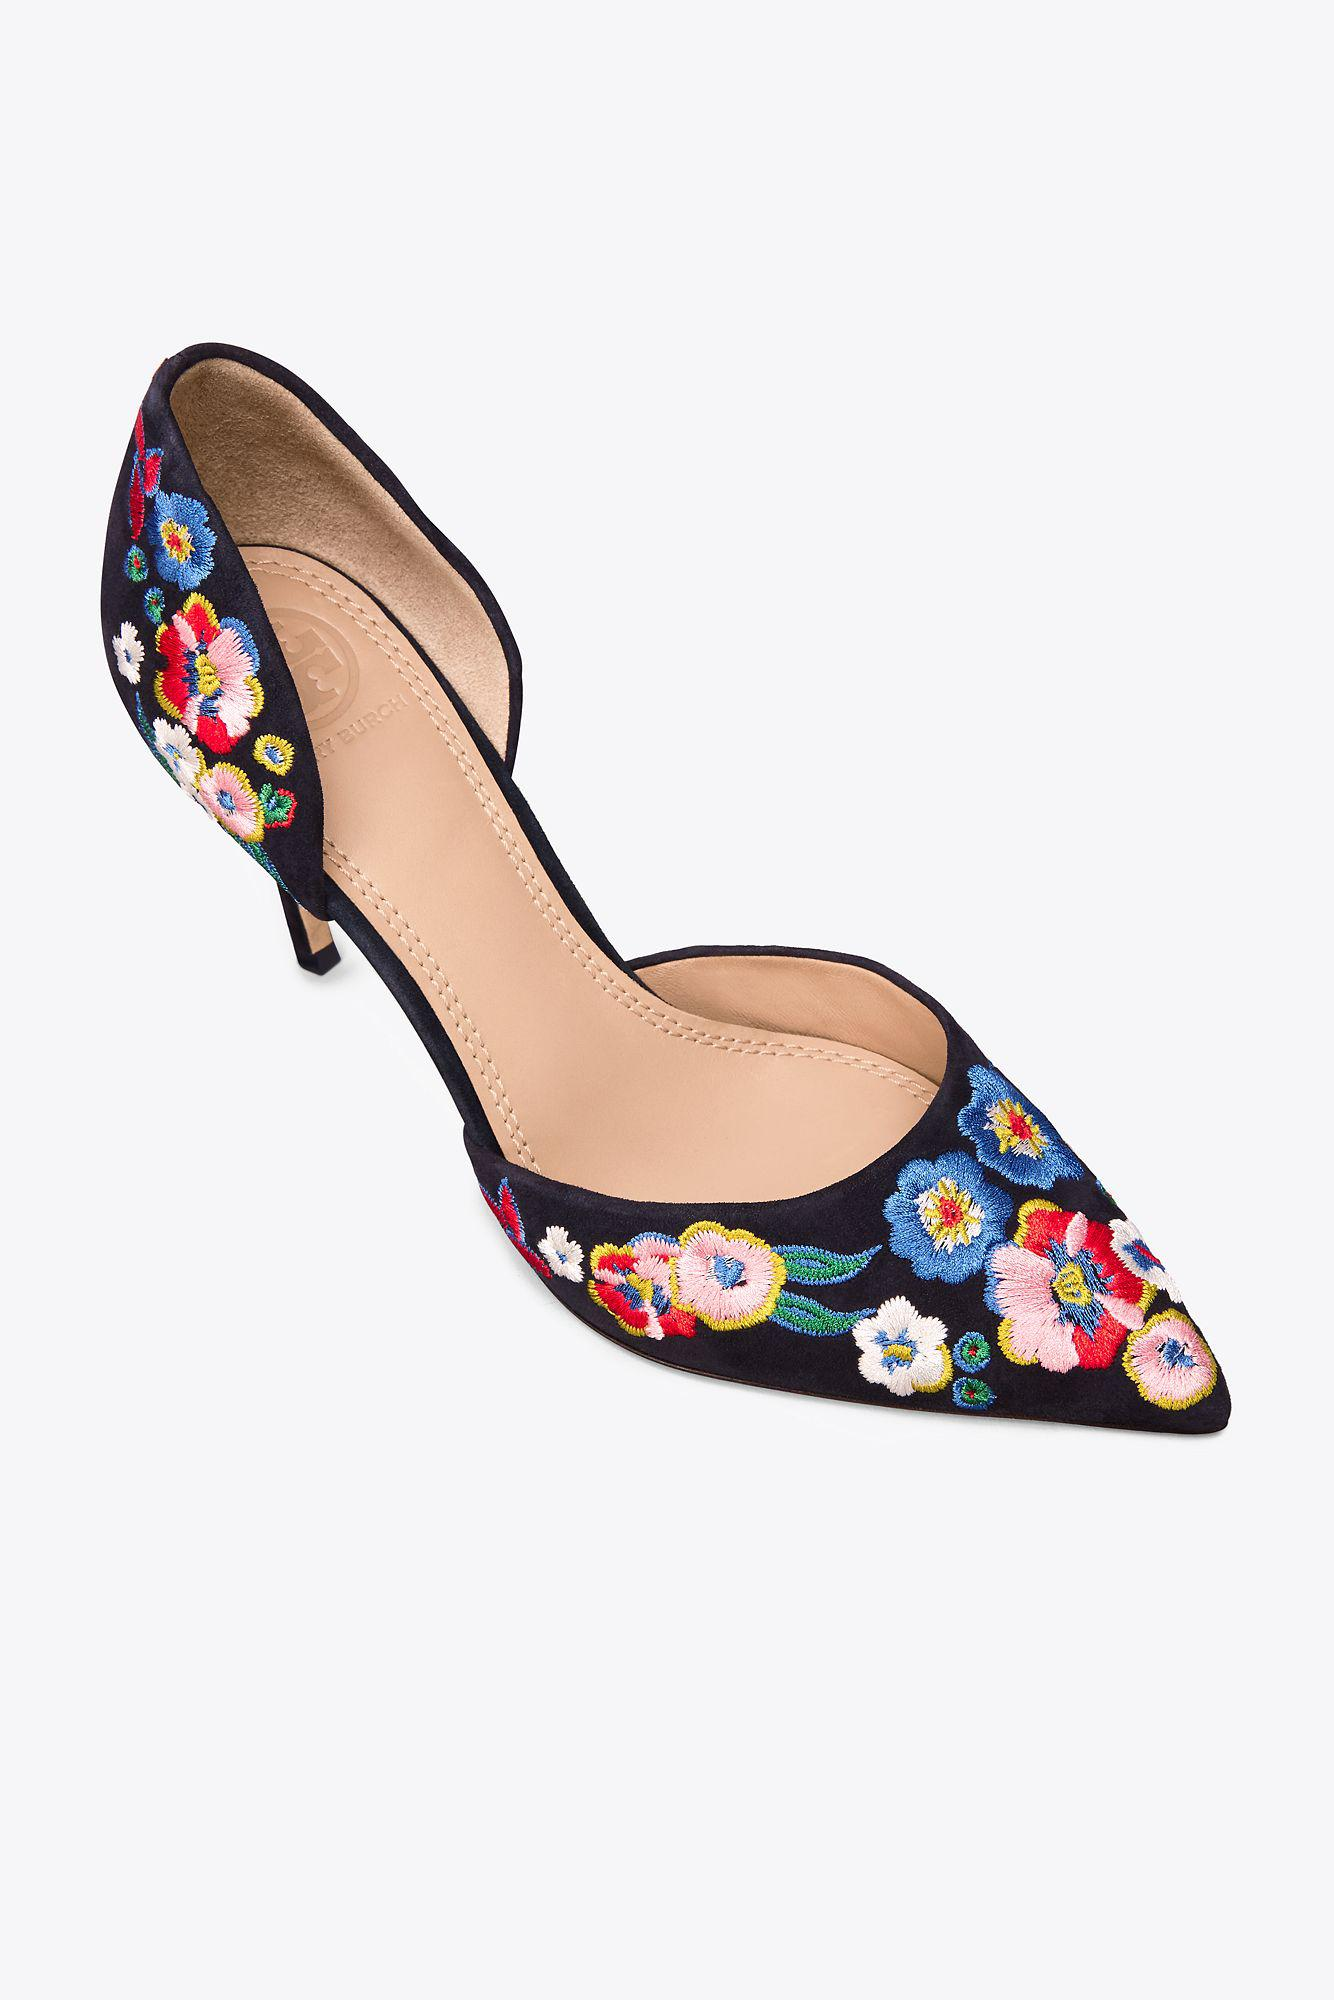 0445d90f0 Tory Burch Rosemont Embroidered D orsay High-heel Pumps in Blue - Lyst